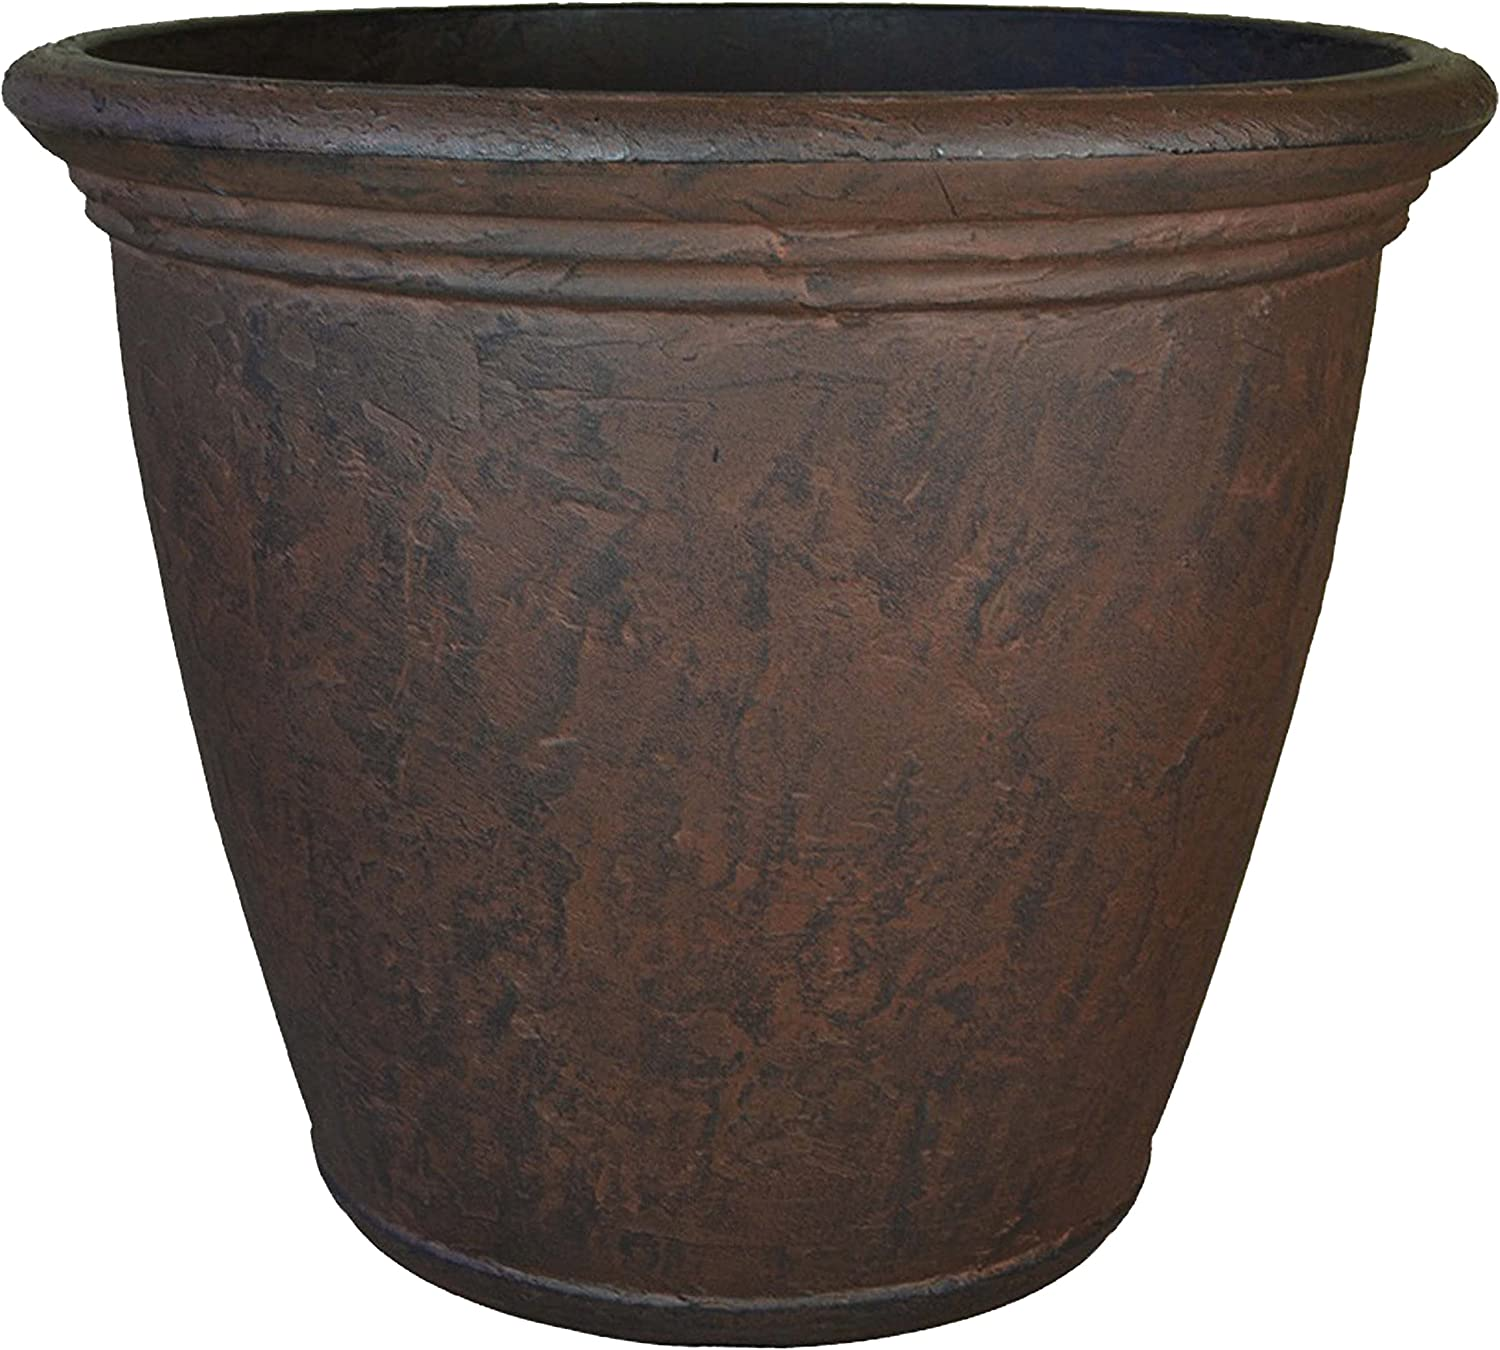 Sunnydaze Anjelica Flower Pot Planter, Outdoor/Indoor Unbreakable Double-Walled Polyresin with UV-Resistant Rust Finish, Single, Large 24-Inch Diameter